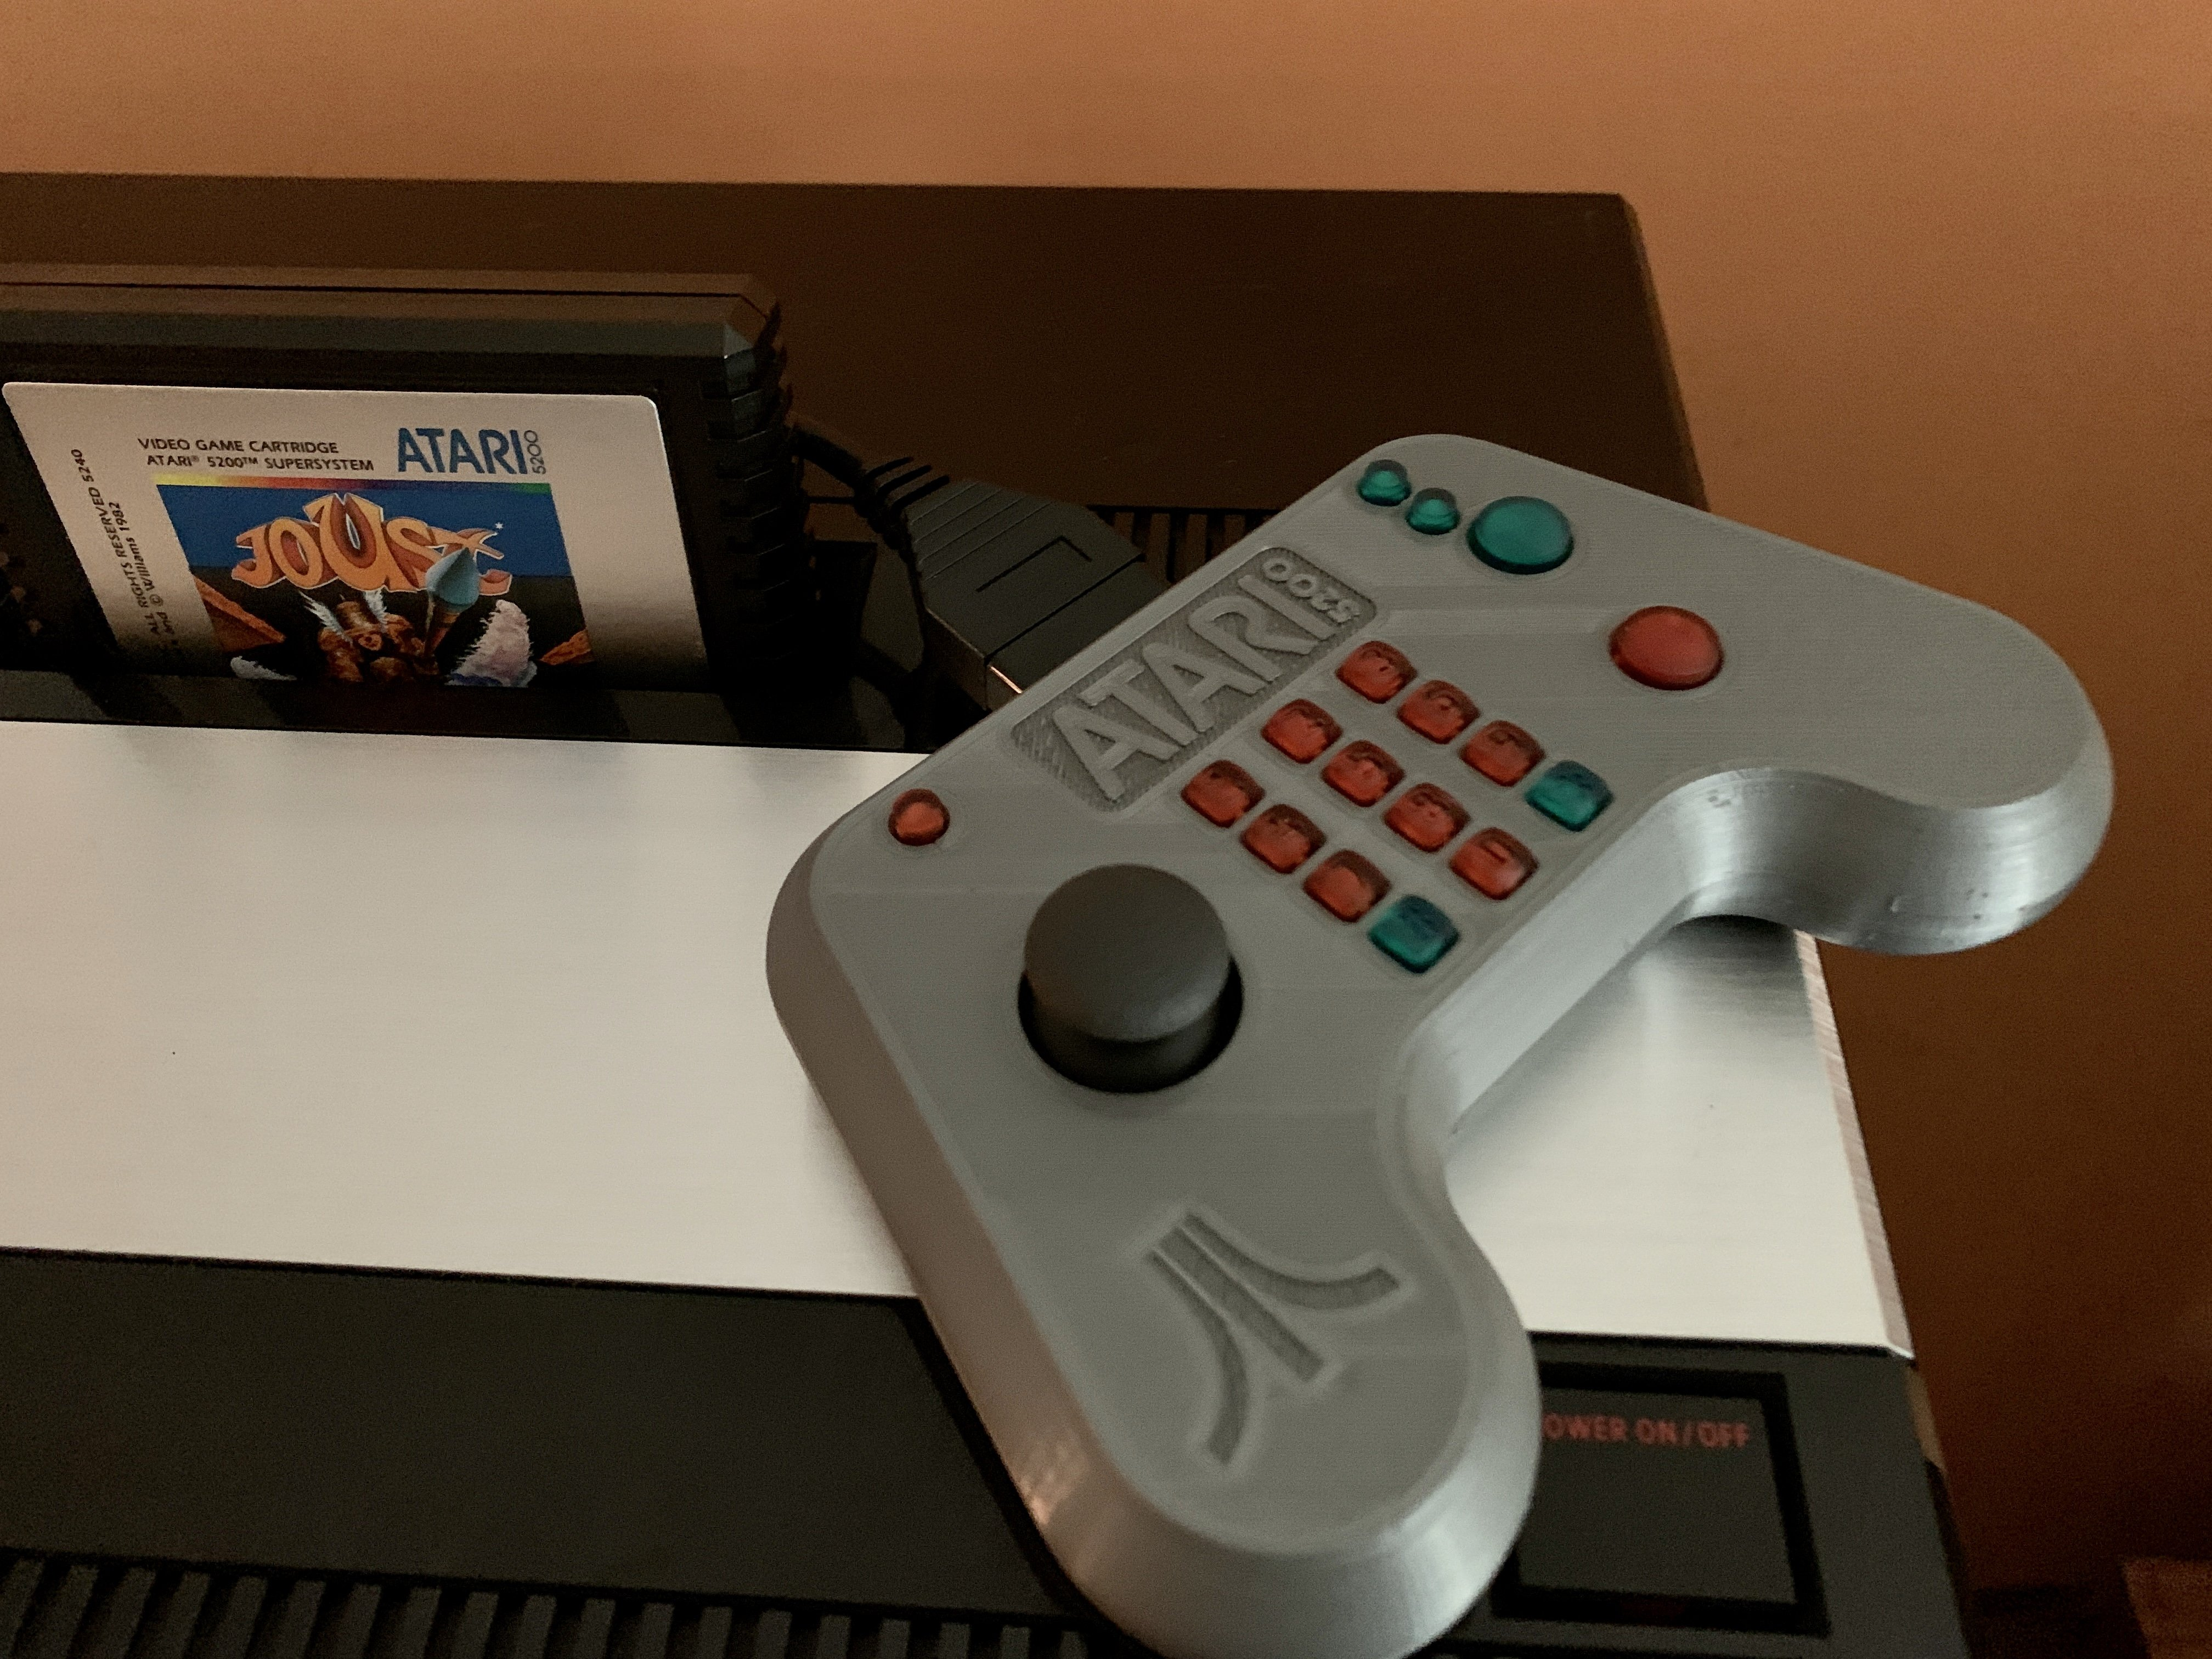 Finally, A New Atari 5200 Controller that Works!